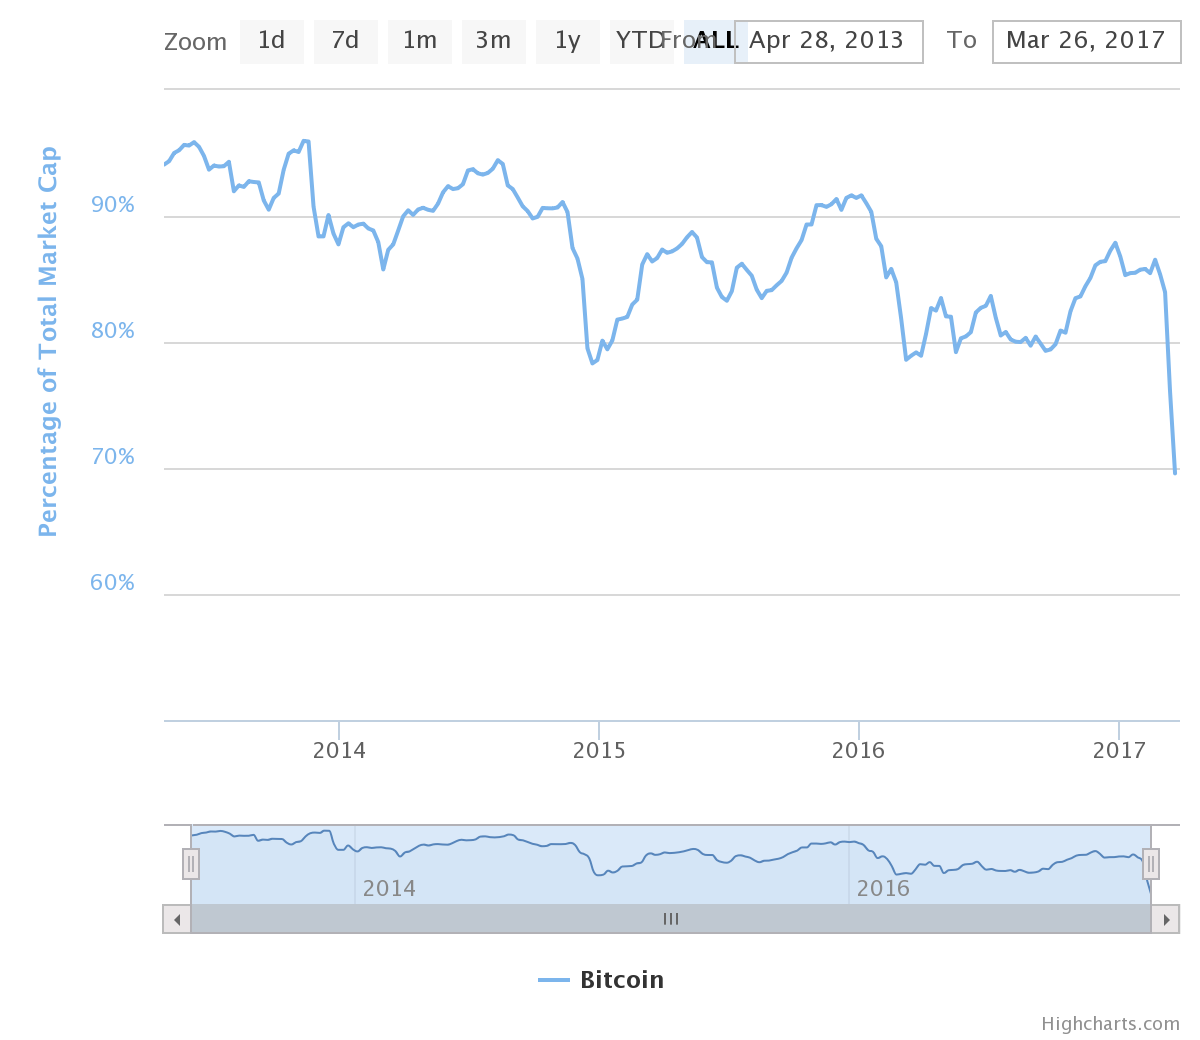 Cryptocurrencies delivering volatility in an otherwise quiet market